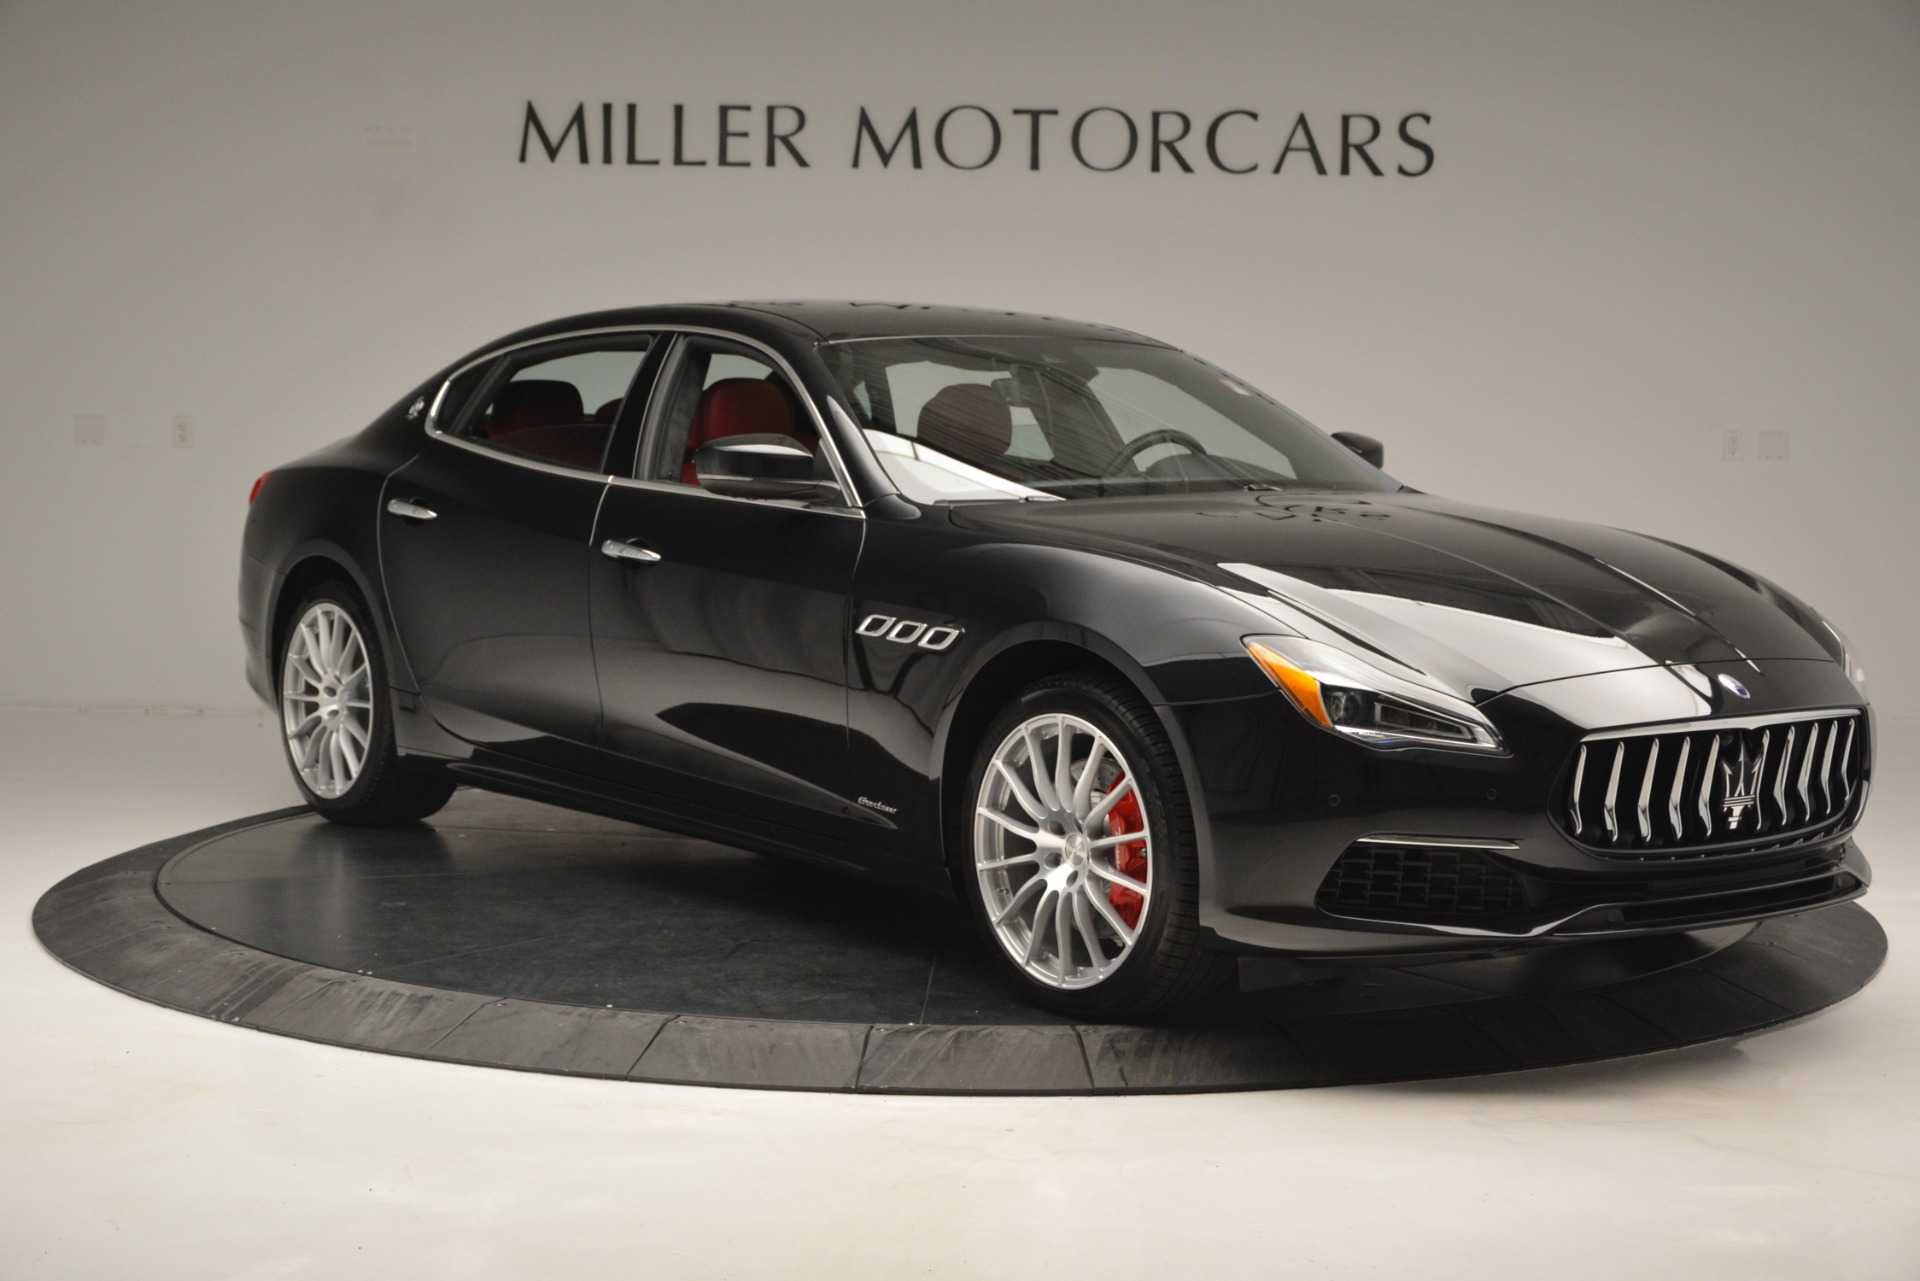 New 2019 Maserati Quattroporte S Q4 GranLusso For Sale In Greenwich, CT 2718_p11